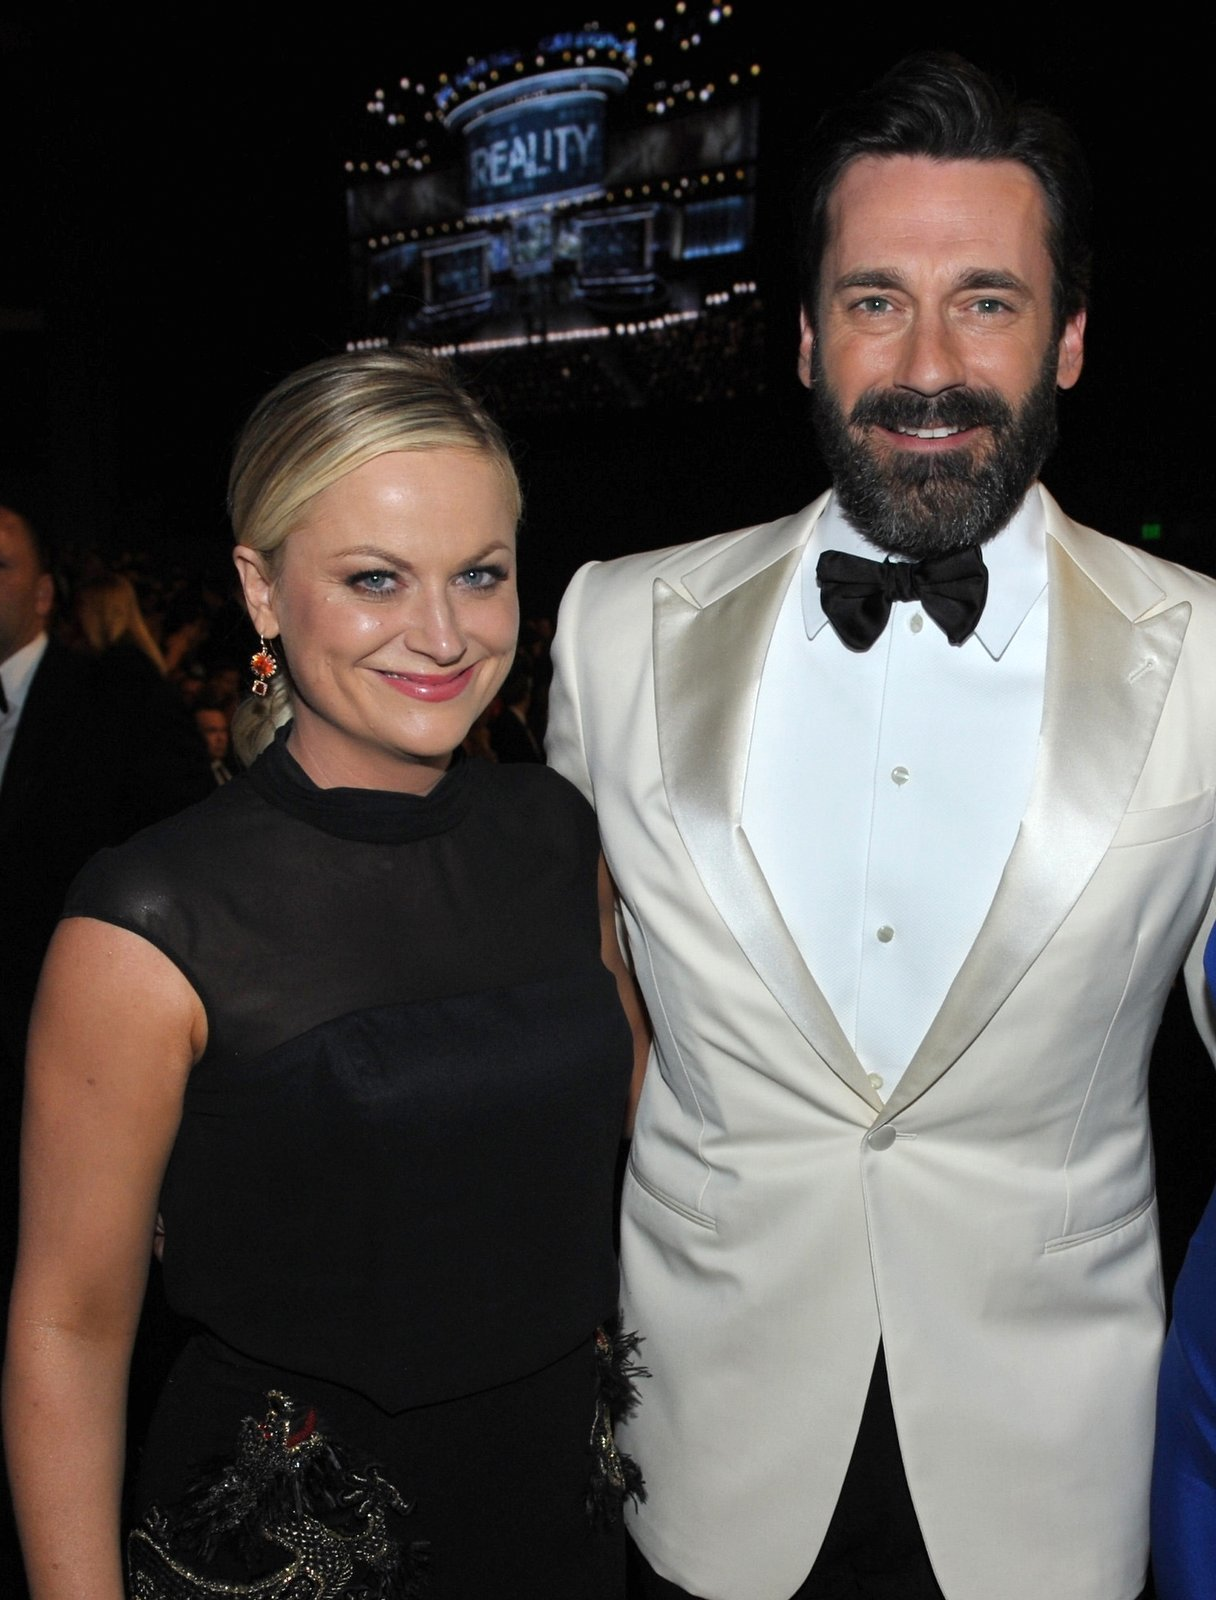 Amy Poehler and Jon Hamm